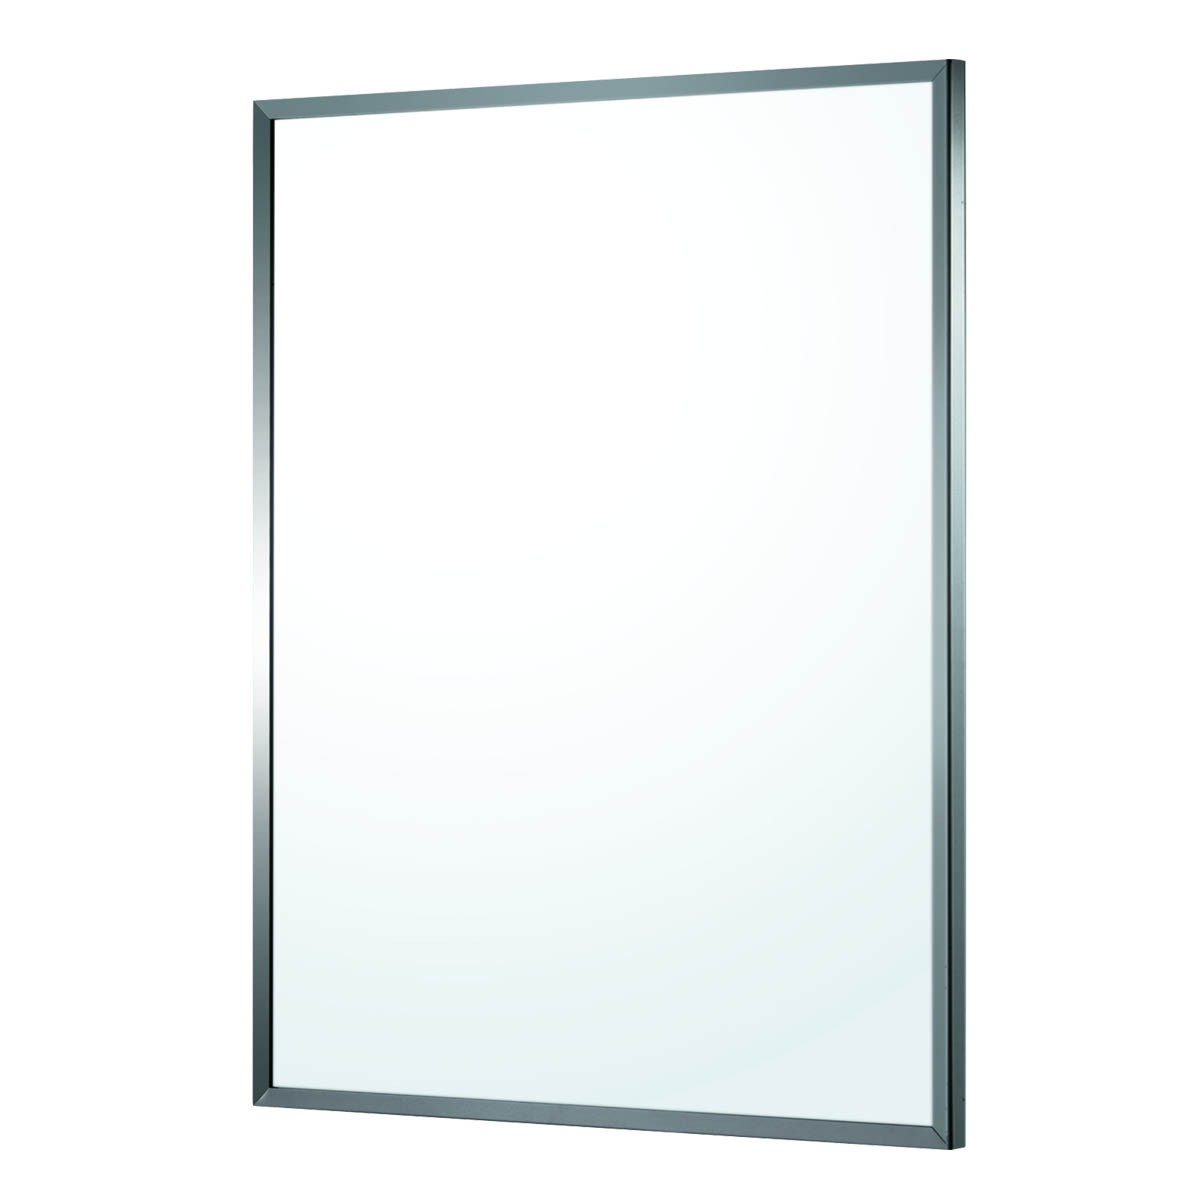 "Bathroom Mirror Polished Stainless Steel Framed 32"" x 24"" 